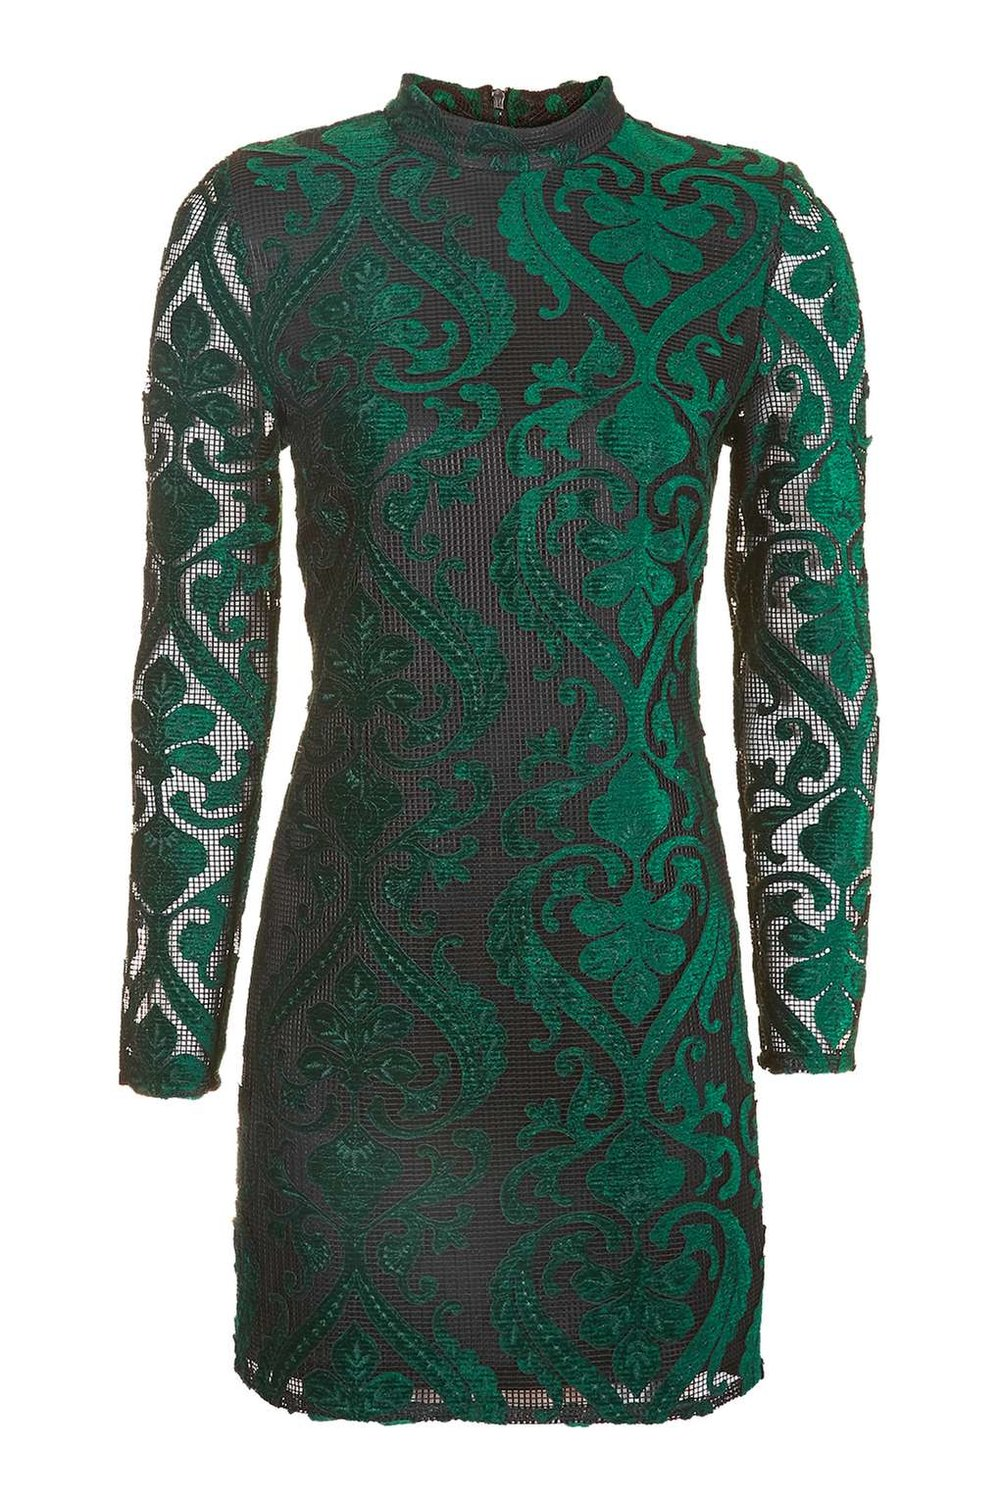 TOPSHOP GREEN VELVET FLOCK DRESS